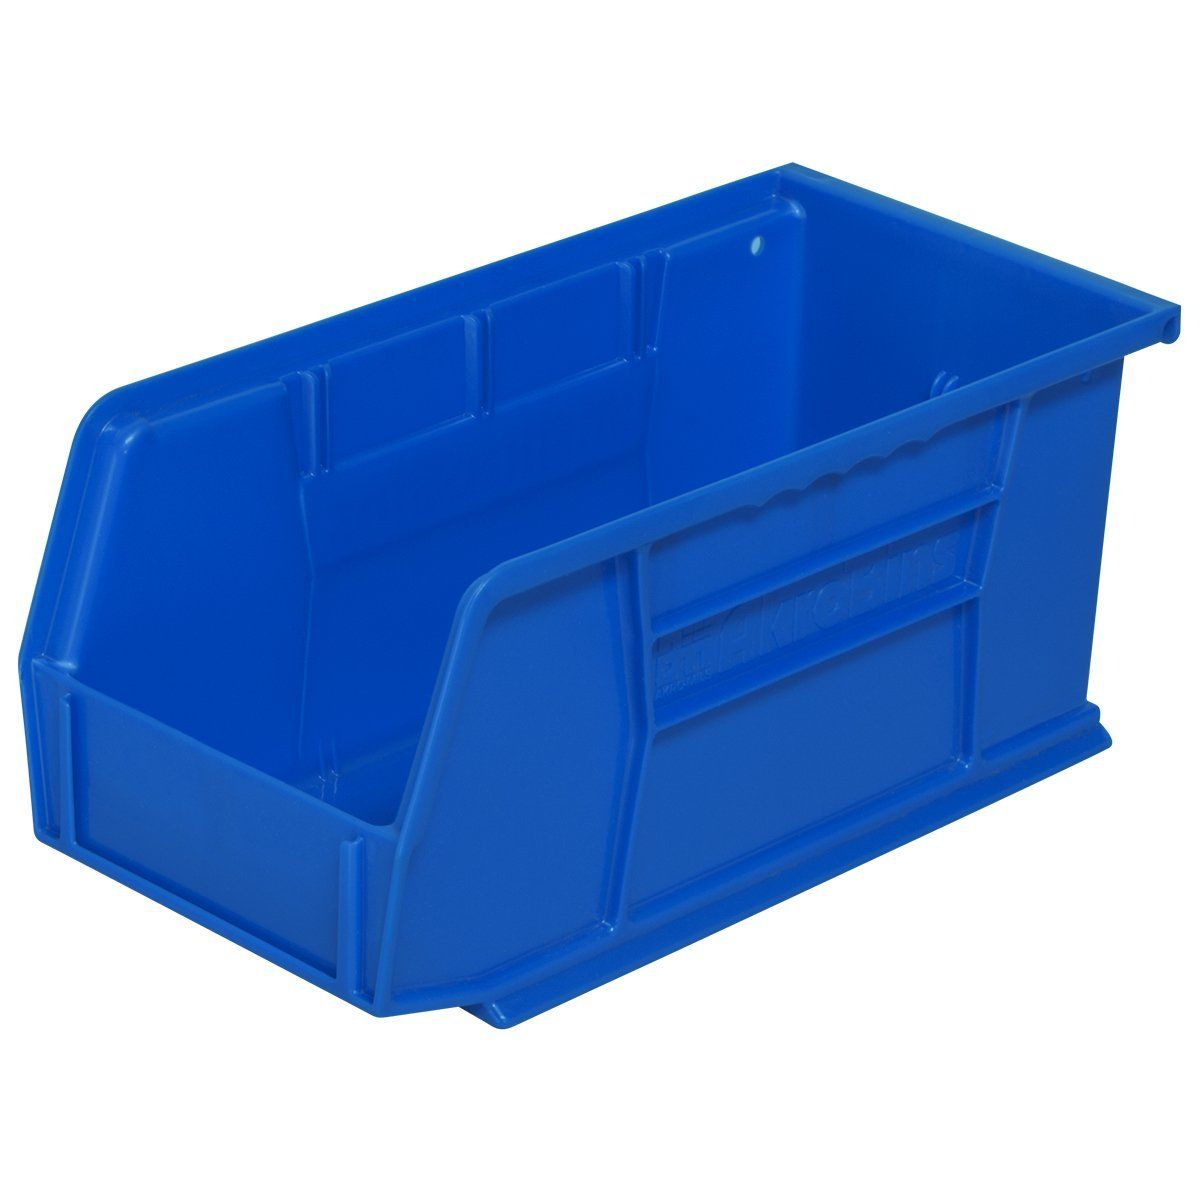 Amazon Com Akro Mils 30230 Plastic Storage Stacking Hanging Akro Bin 11 Inch By 5 Inch By 5 Inch Blue Case Of Storage Plastic Storage Plastic Storage Bins